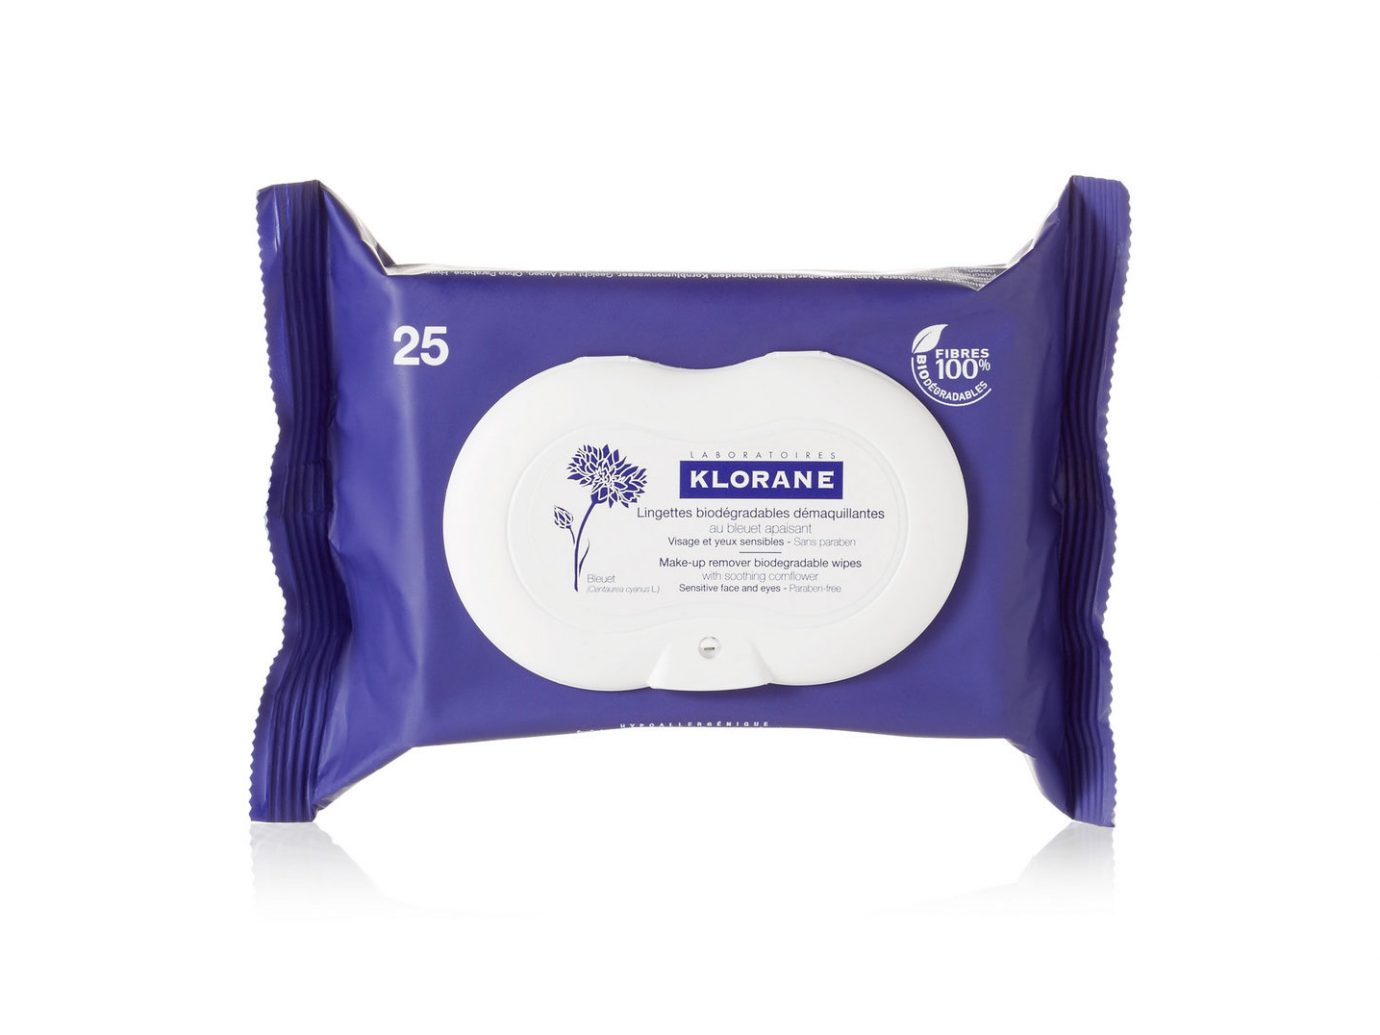 Klorane Makeup Remover Biodegradable Wipes with Soothing Cornflower